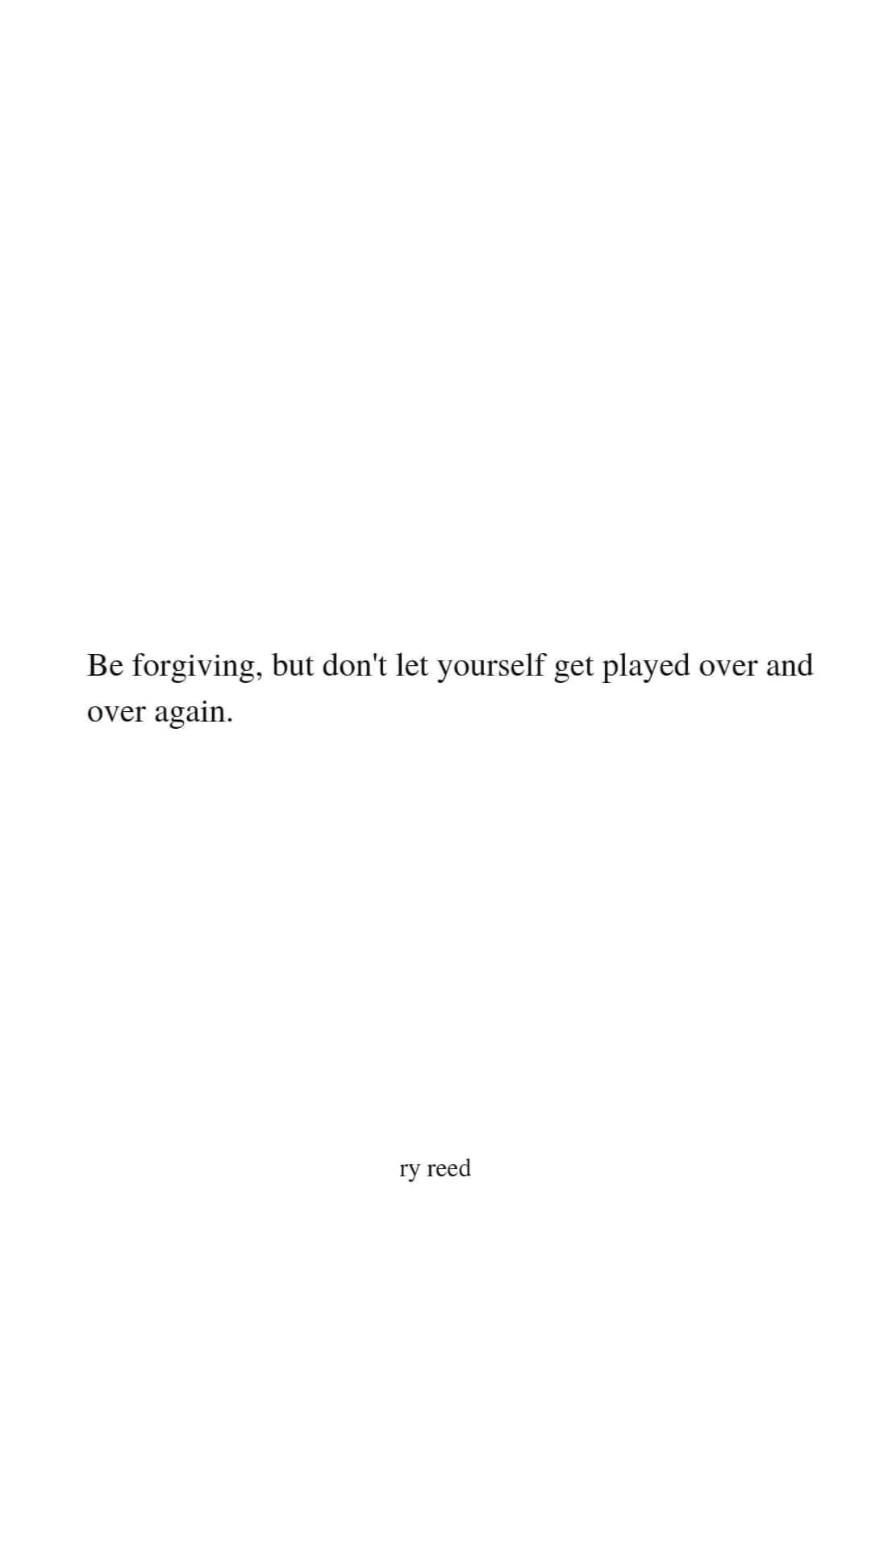 be forgiving but don't let yourself get played